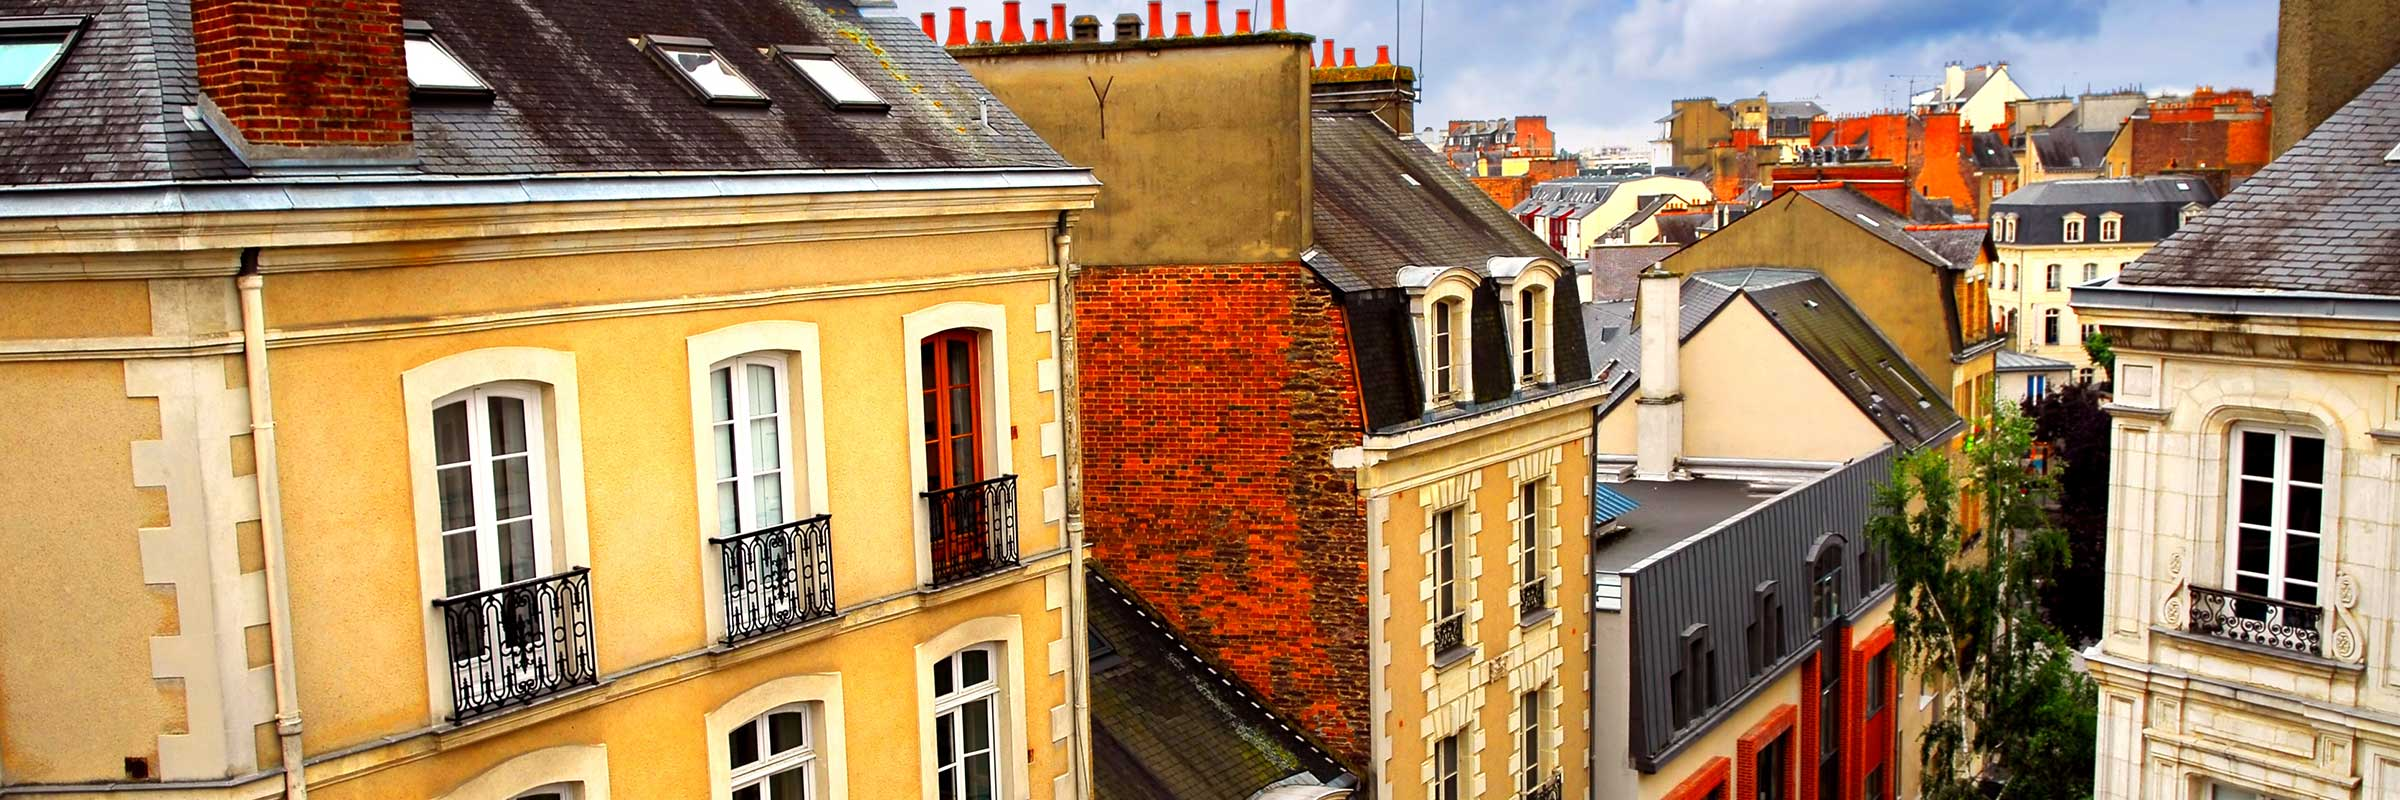 Summer Program - French | CIEE High School Summer Abroad: Advance French Language & Culture in Rennes, France